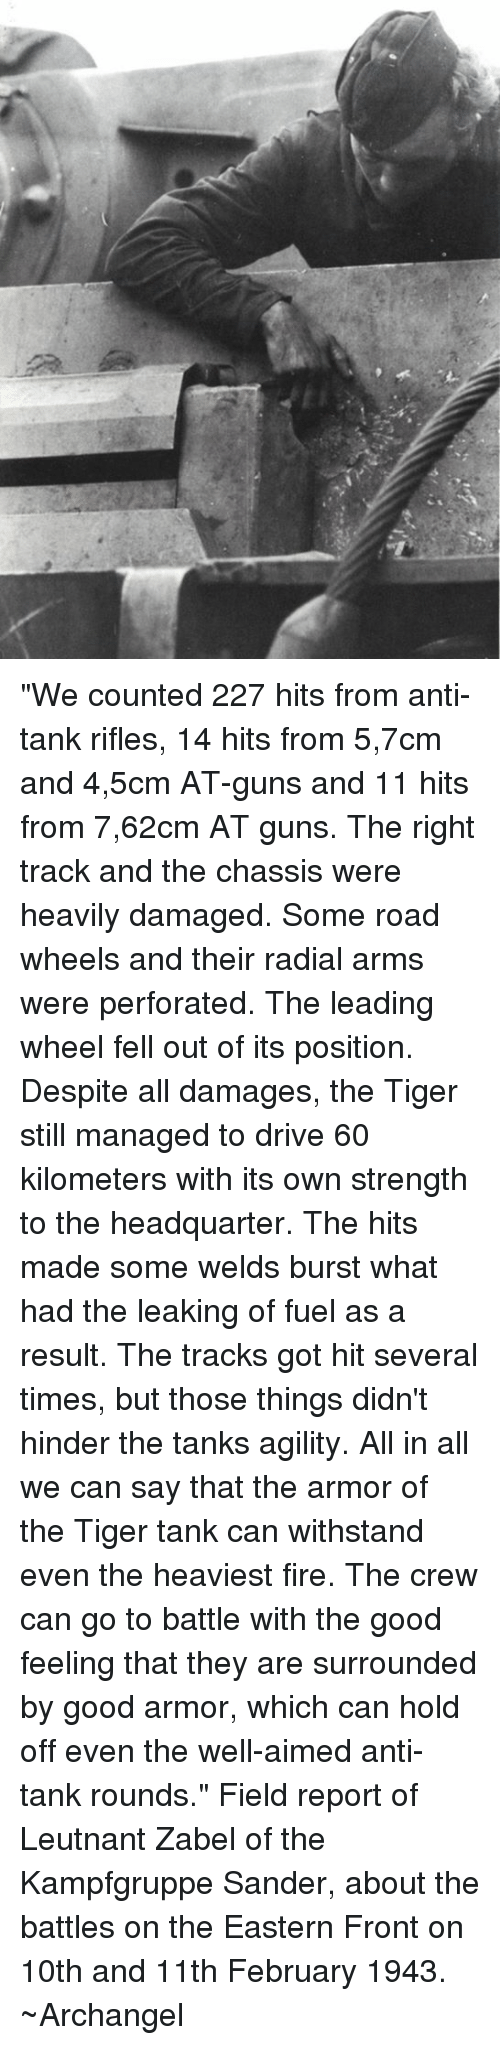 """Withstanded: """"We counted 227 hits from anti-tank rifles, 14 hits from 5,7cm and 4,5cm AT-guns and 11 hits from 7,62cm AT guns. The right track and the chassis were heavily damaged. Some road wheels and their radial arms were perforated. The leading wheel fell out of its position. Despite all damages, the Tiger still managed to drive 60 kilometers with its own strength to the headquarter. The hits made some welds burst what had the leaking of fuel as a result. The tracks got hit several times, but those things didn't hinder the tanks agility. All in all we can say that the armor of the Tiger tank can withstand even the heaviest fire. The crew can go to battle with the good feeling that they are surrounded by good armor, which can hold off even the well-aimed anti-tank rounds.""""   Field report of Leutnant Zabel of the Kampfgruppe Sander, about the battles on the Eastern Front on 10th and 11th February 1943. ~Archangel"""